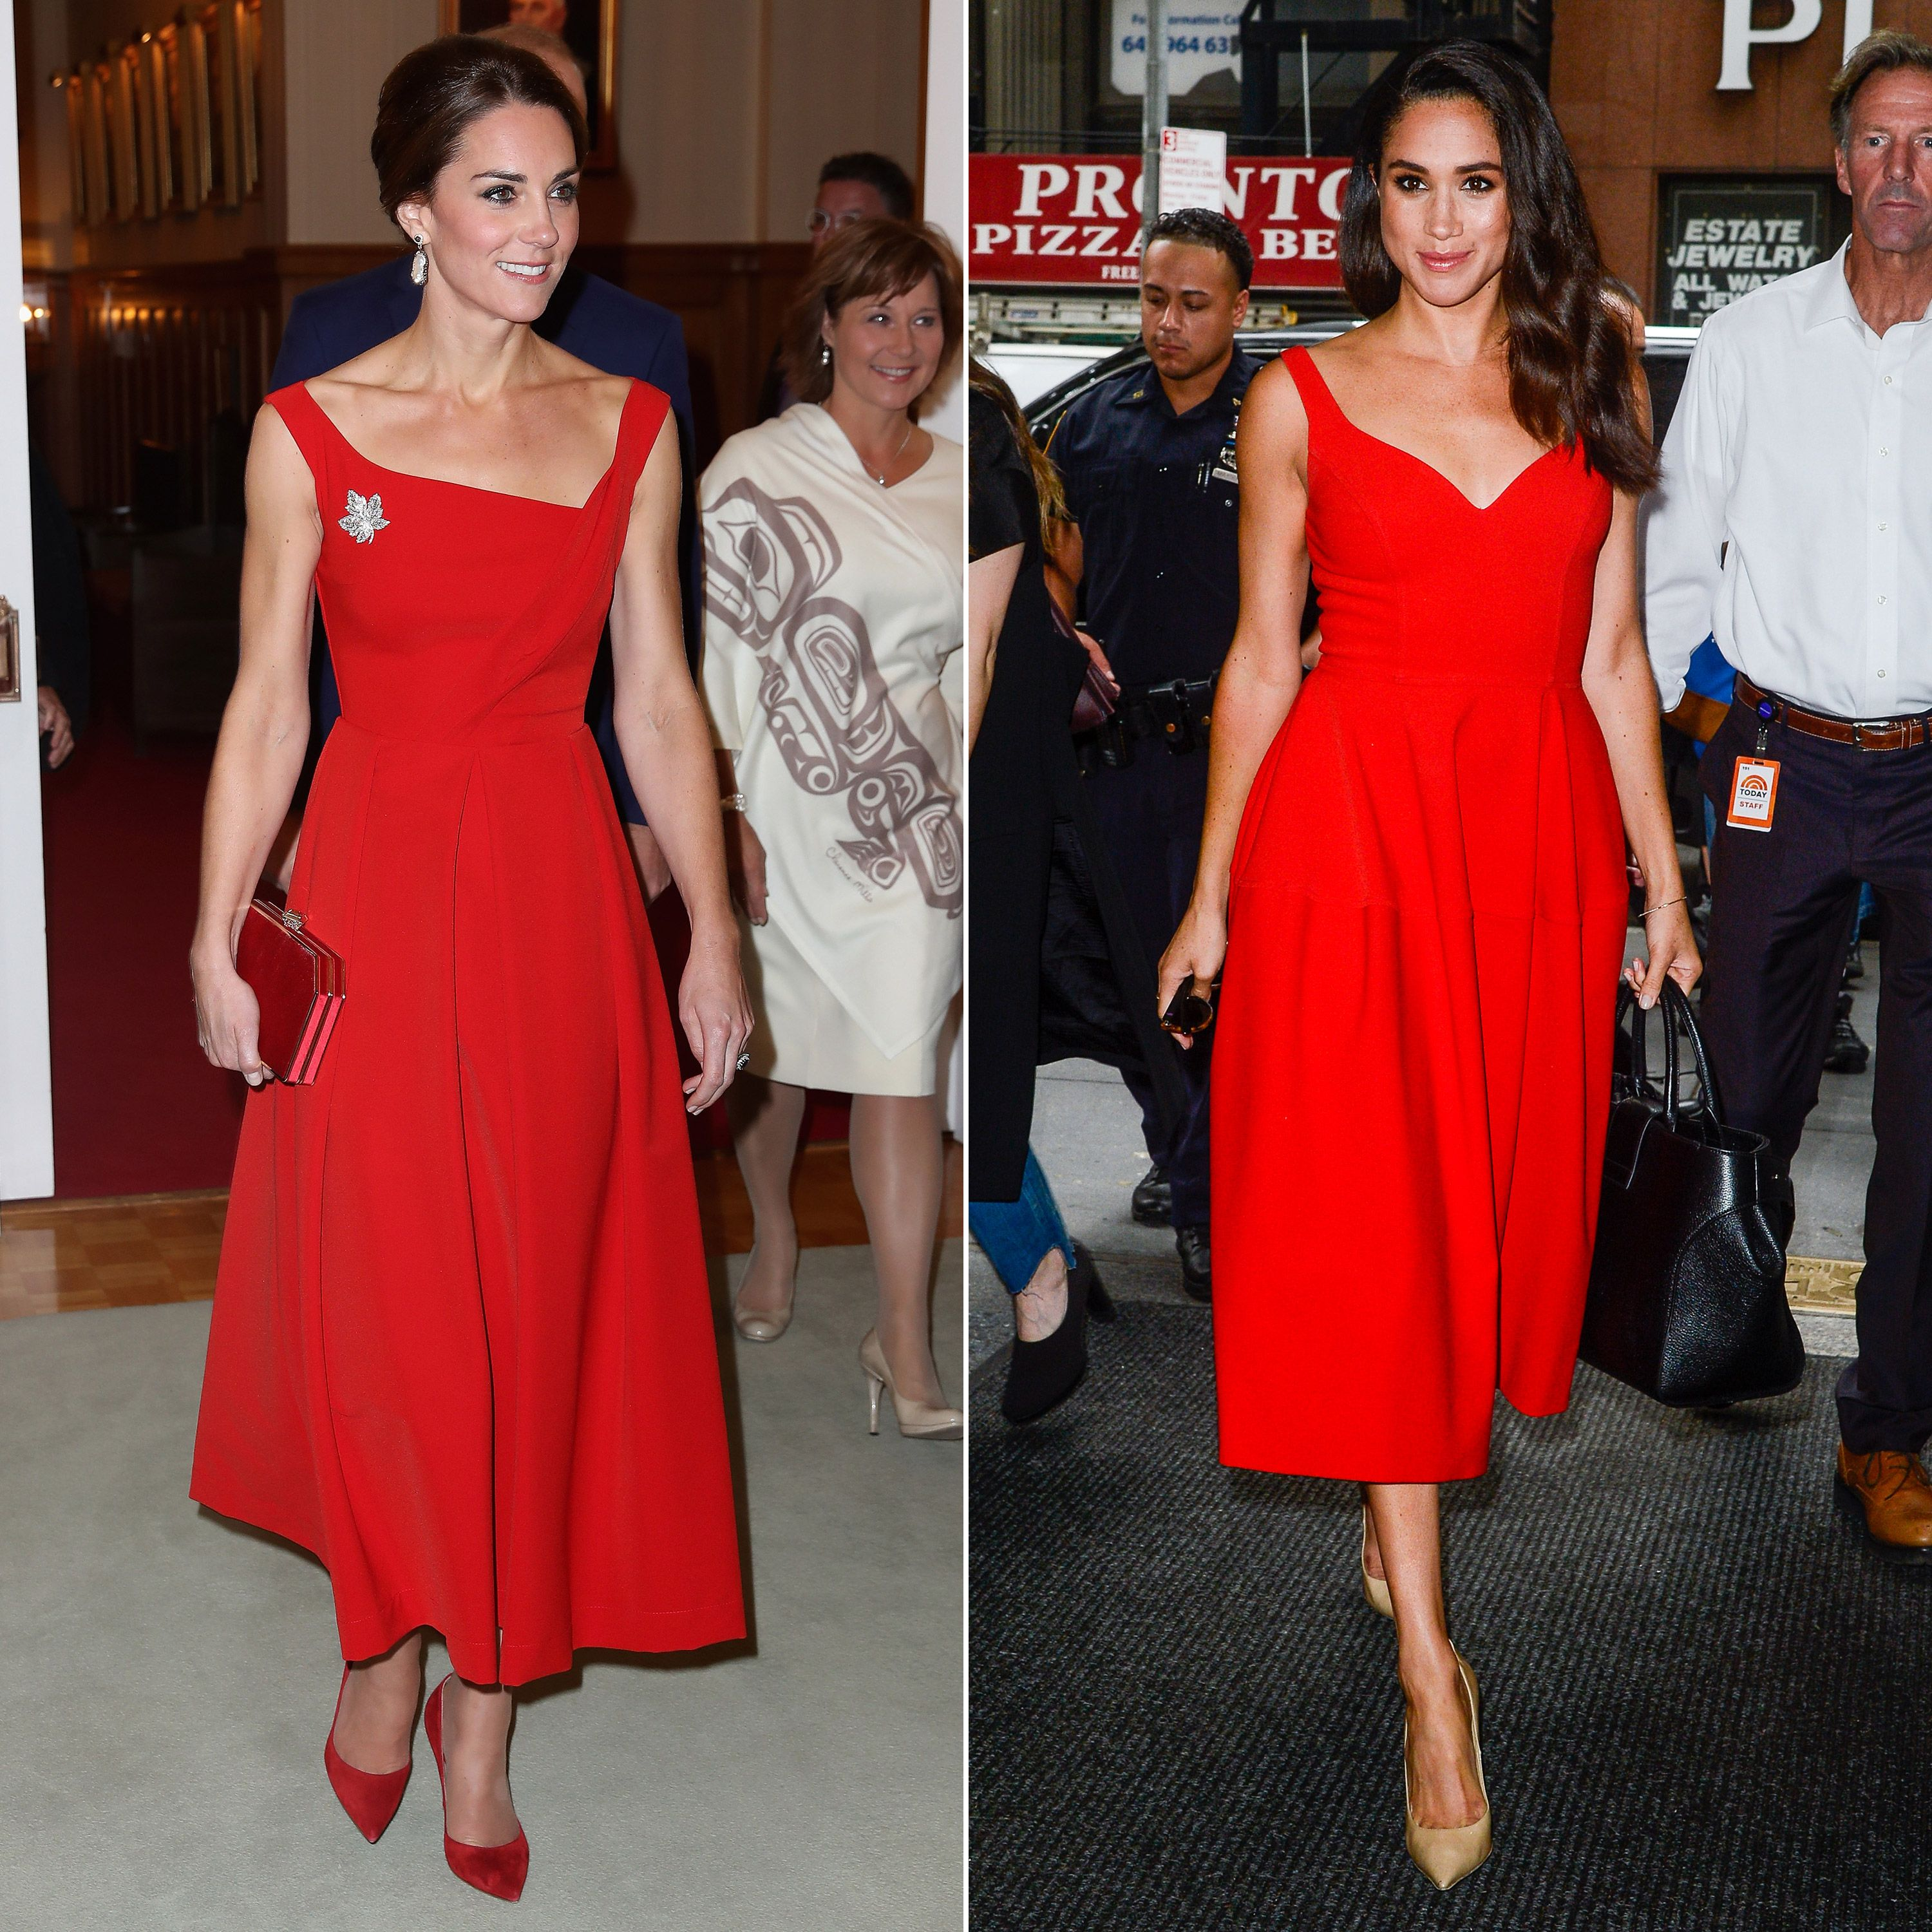 a2809974 Meghan Markle and Kate Middleton's matching fashion - similar style moments